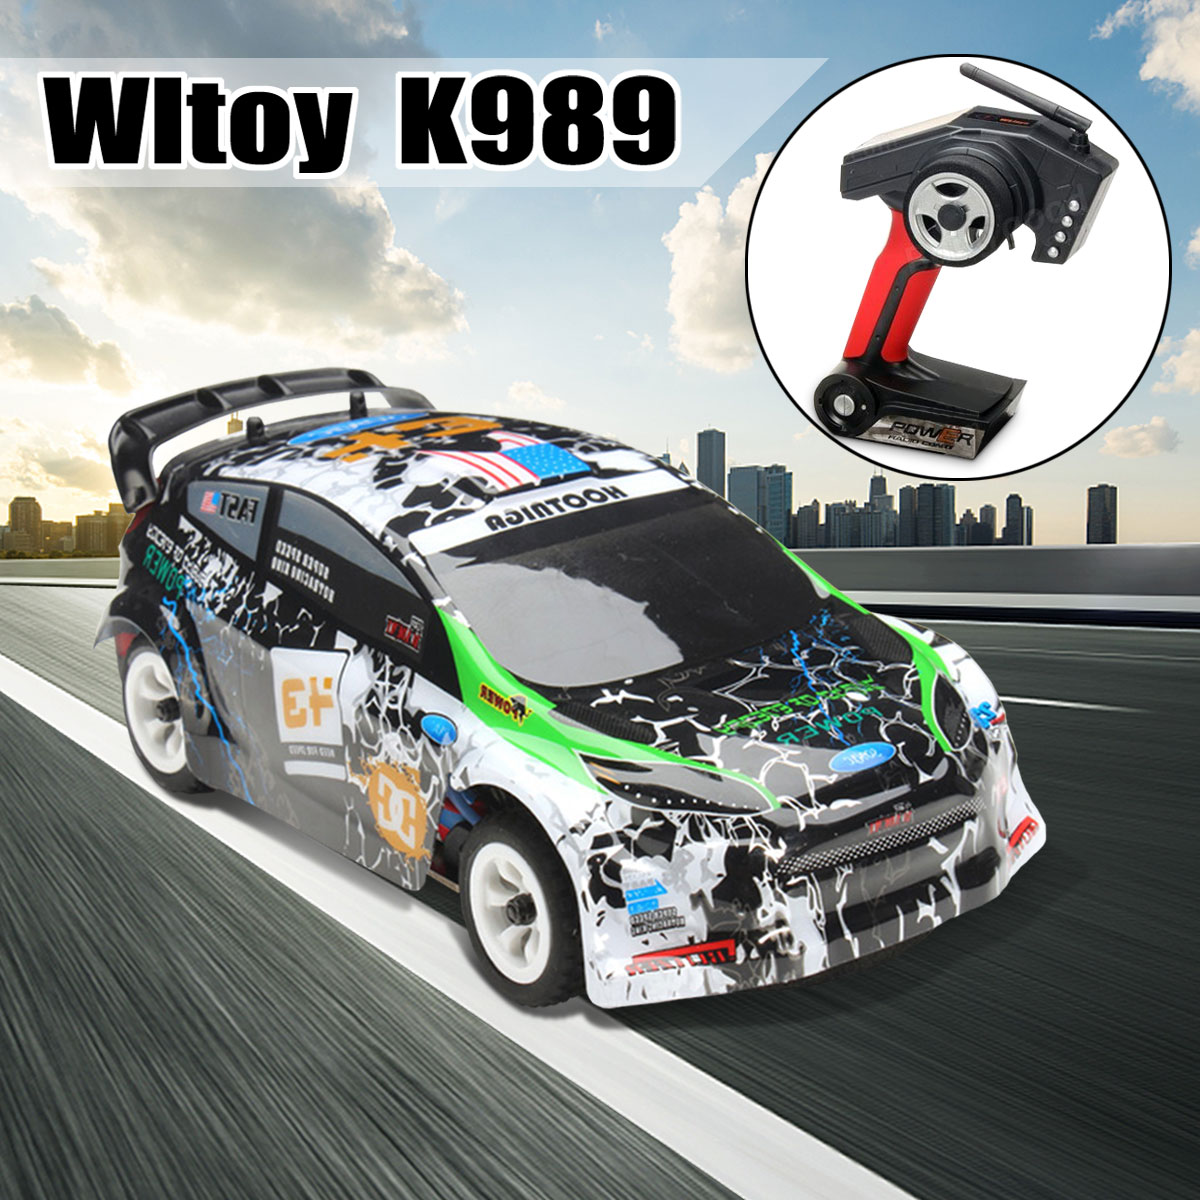 Wltoys K989 1/28 2.4G 4WD Cars Brushed RC Remote Control Racing Car RTR Drift Alloy High Quality Toys Models